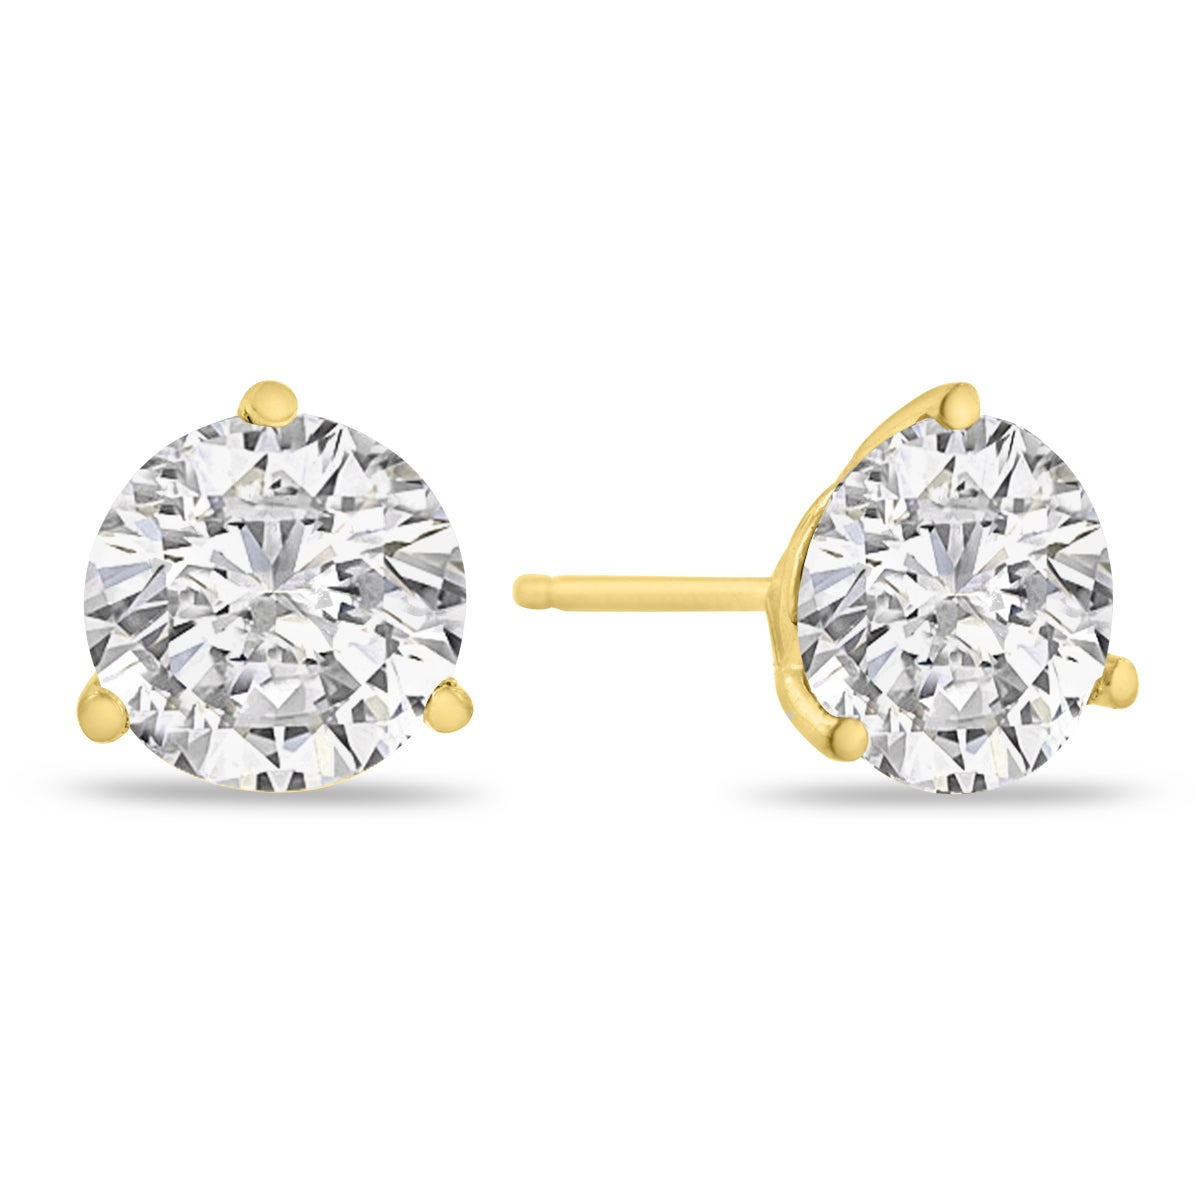 d52eaa2c7 14K Yellow Gold Natural Diamond Martini Stud Earrings | eBay